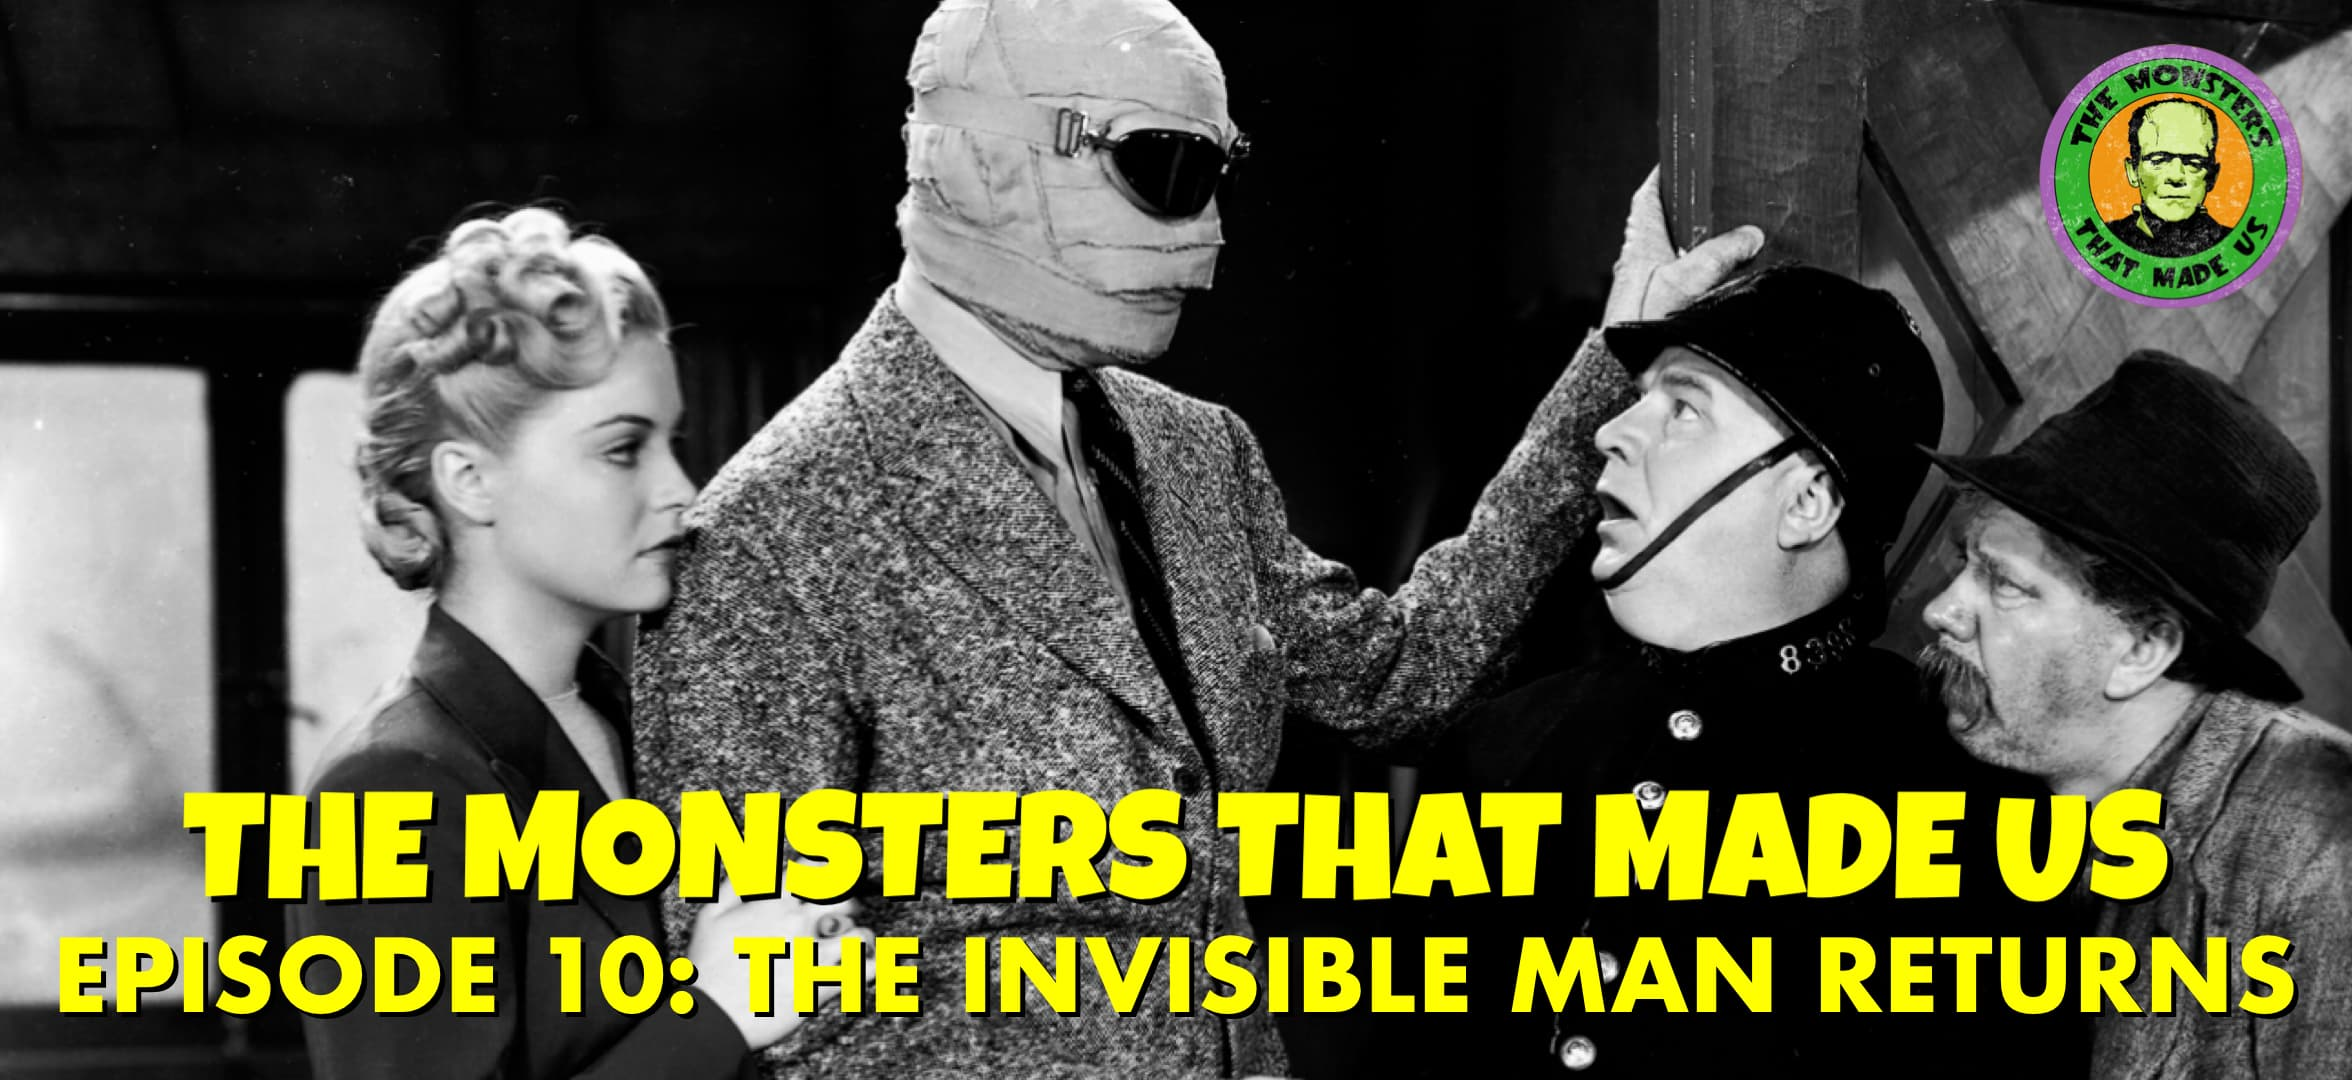 The Monsters That Made Us #10 - The Invisible Man Returns (1940)